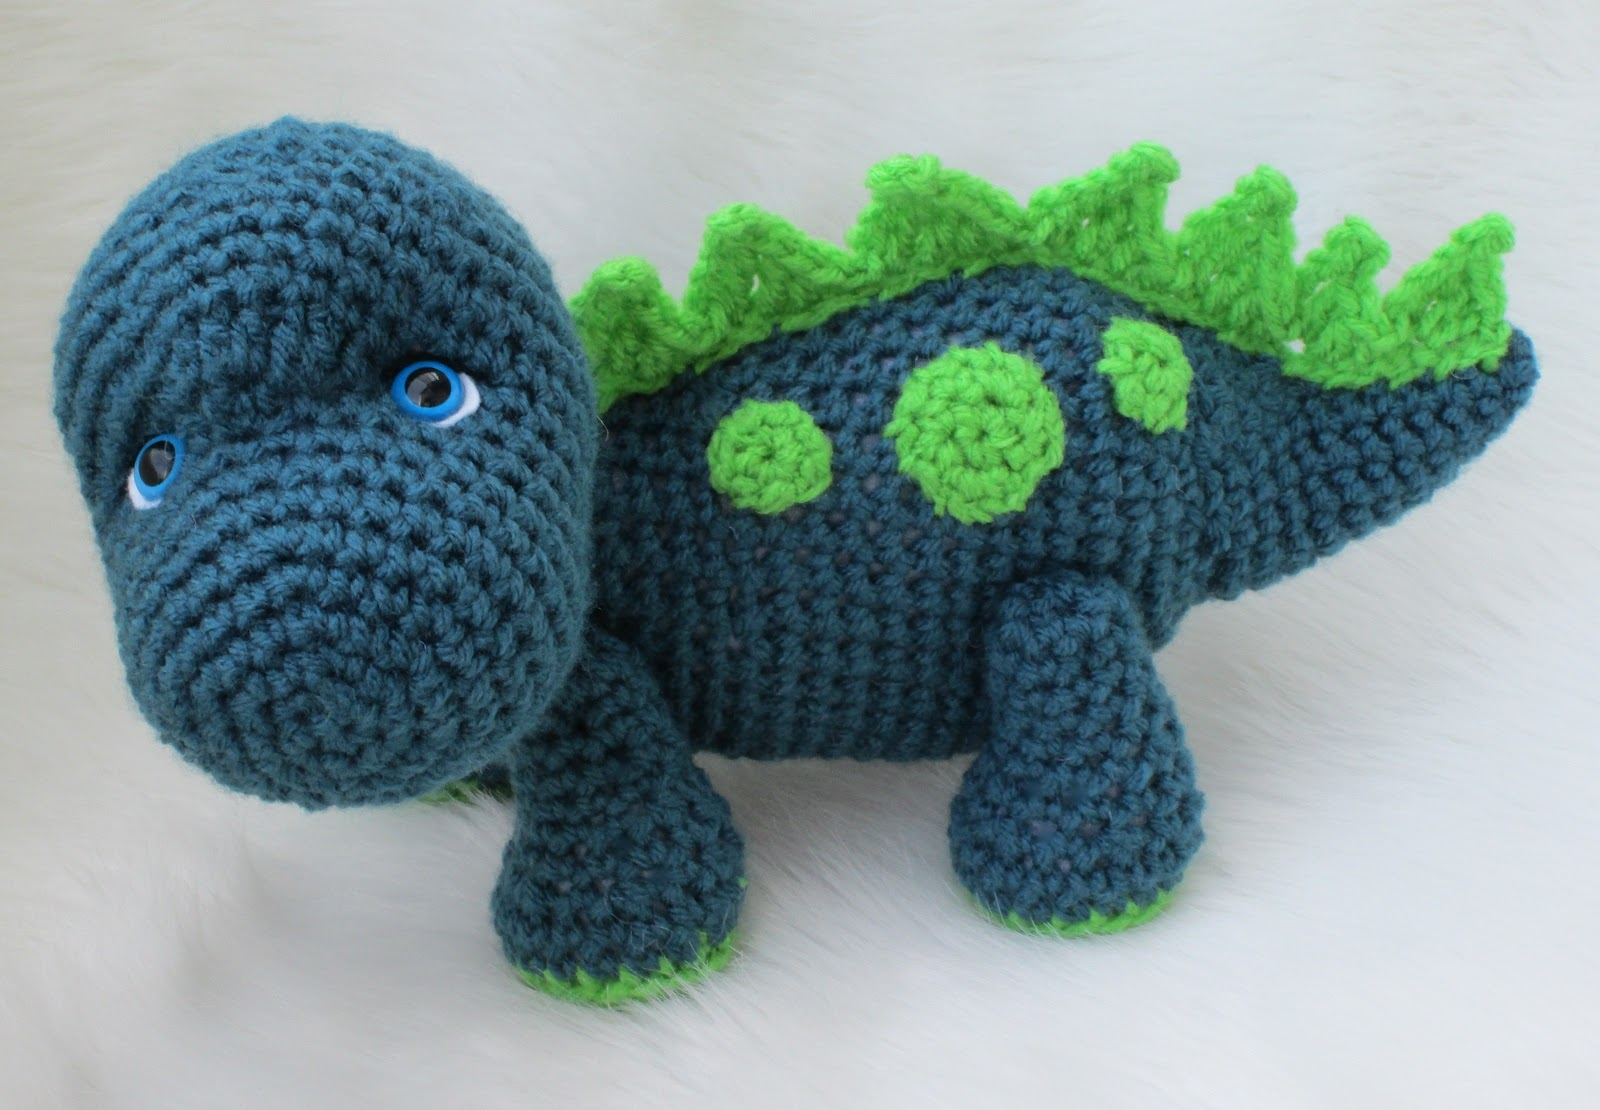 Free Crochet Pattern For Dinosaur Beanie : Teris Blog: Cute Dinosaur